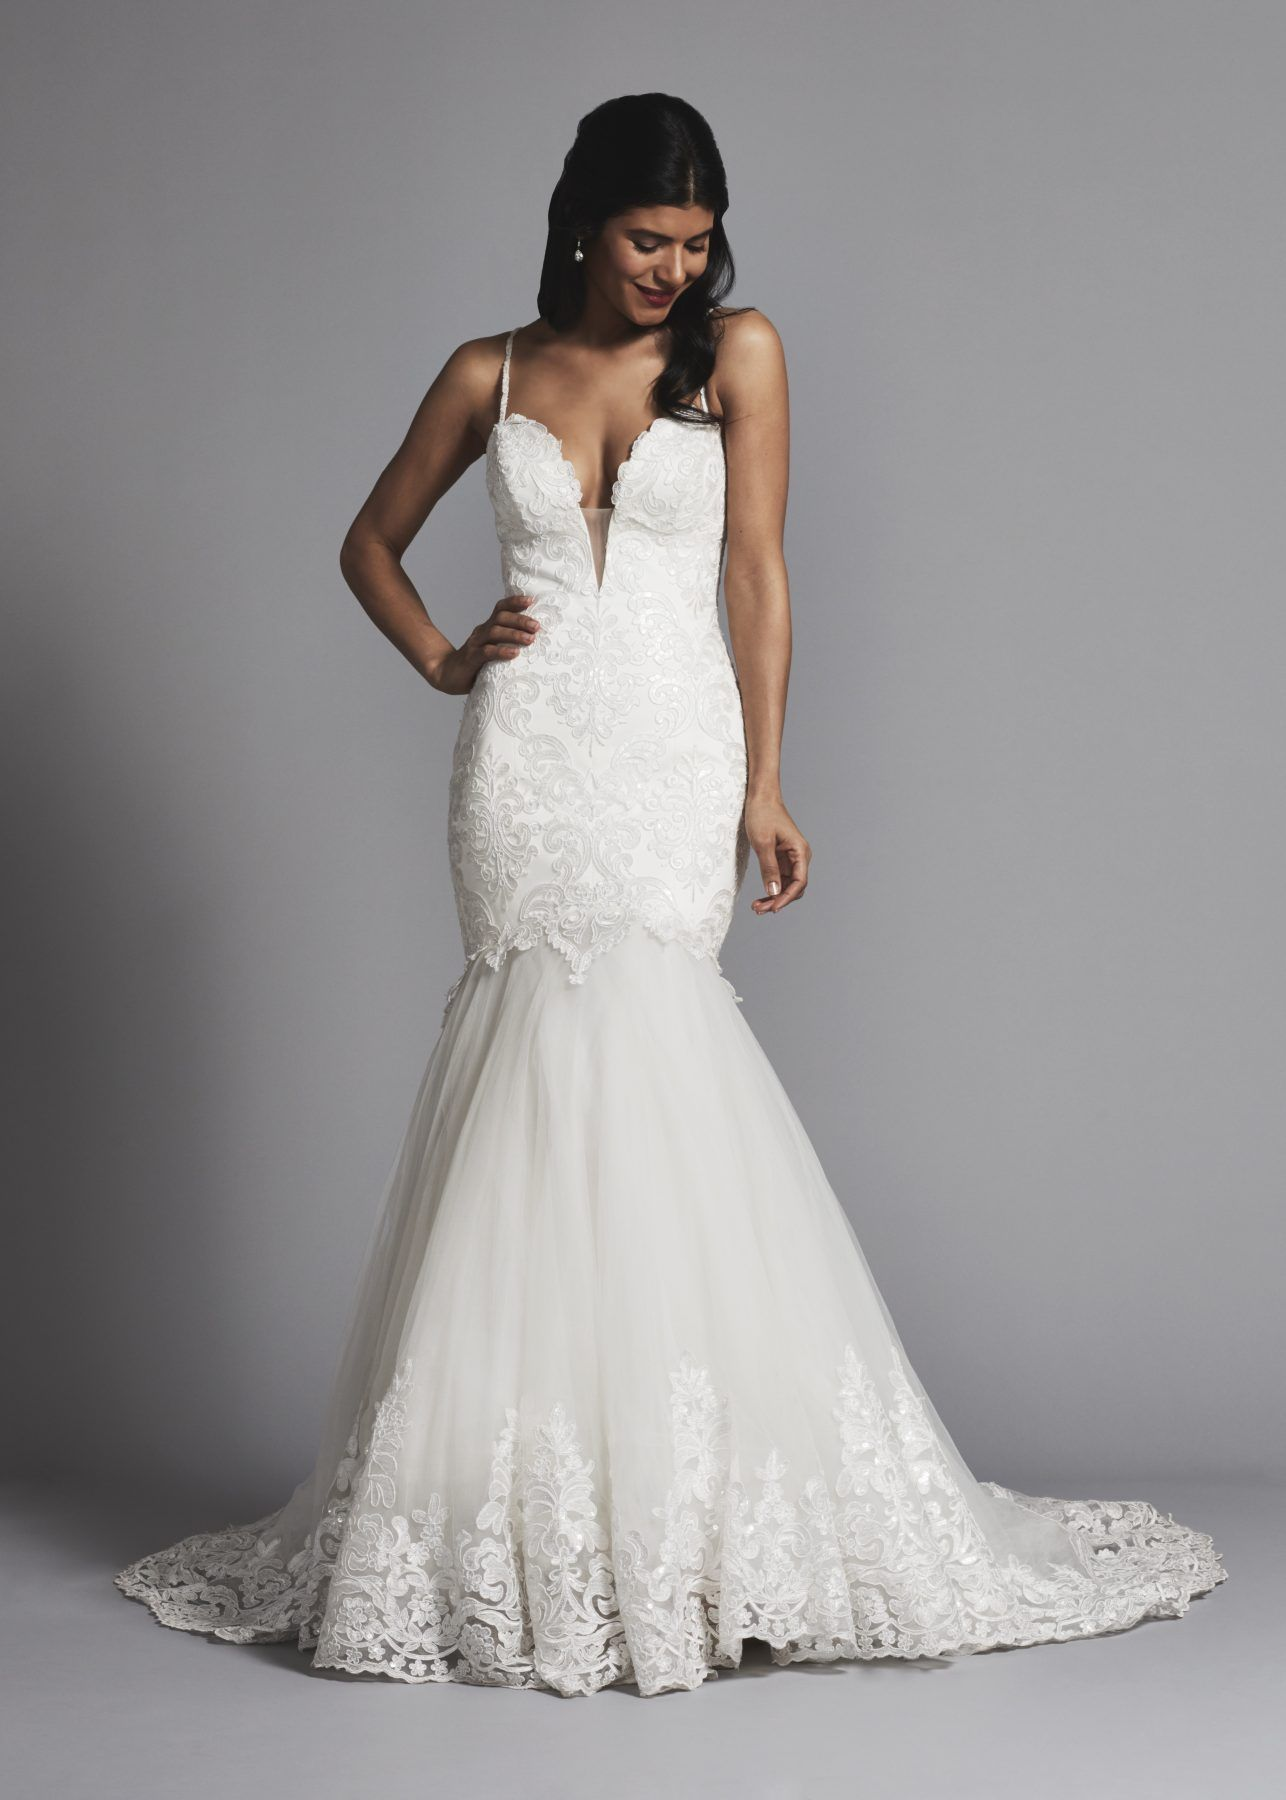 Spaghetti strap lace and tulle mermaid wedding dress.  d6ed043dfd59